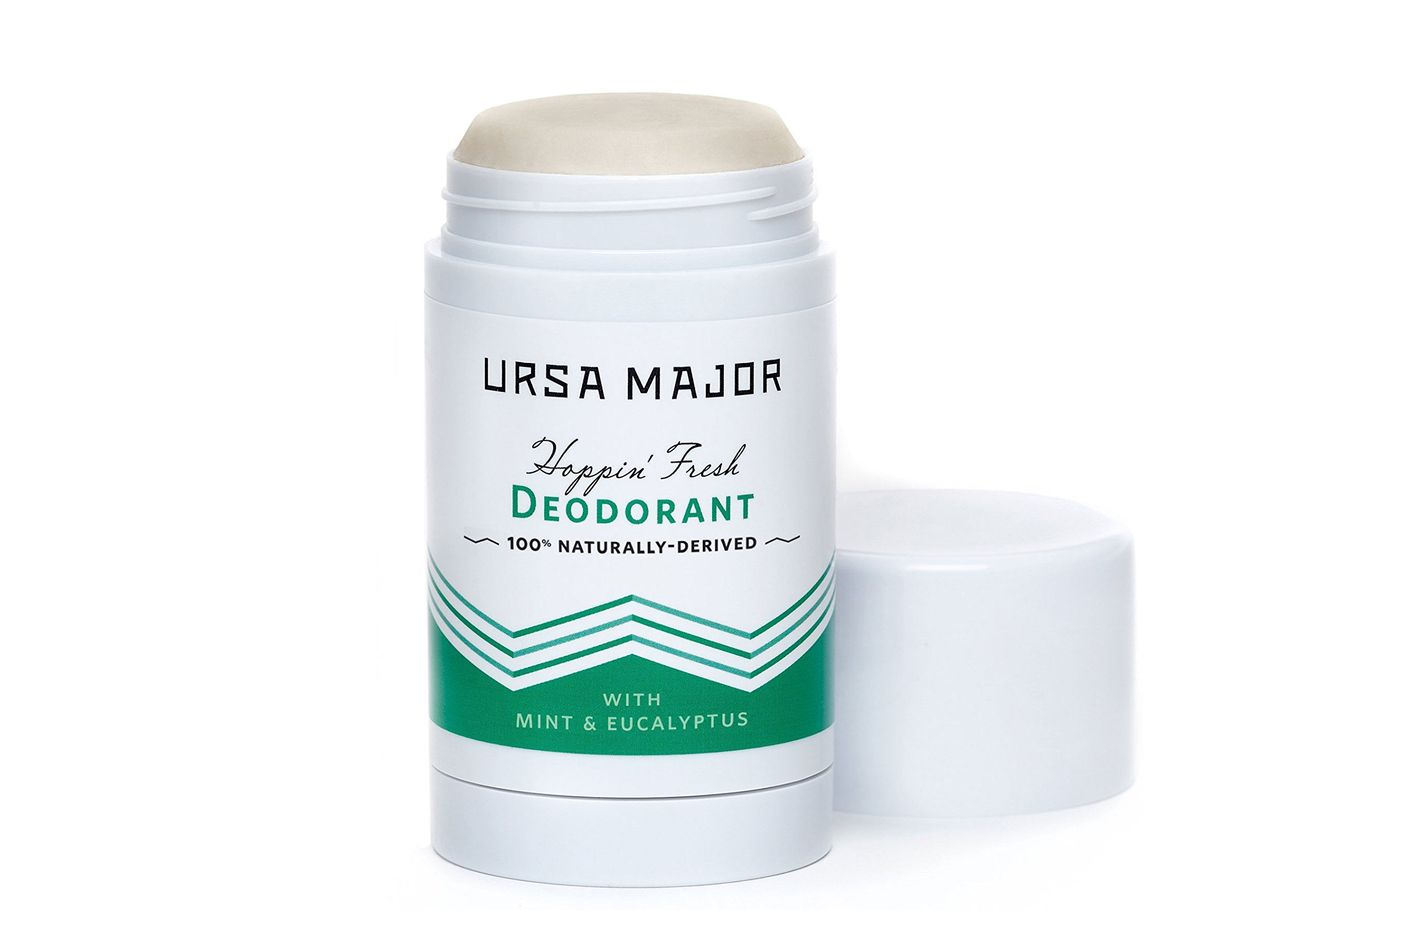 15 Best Natural Deodorants Reviewed, 2019